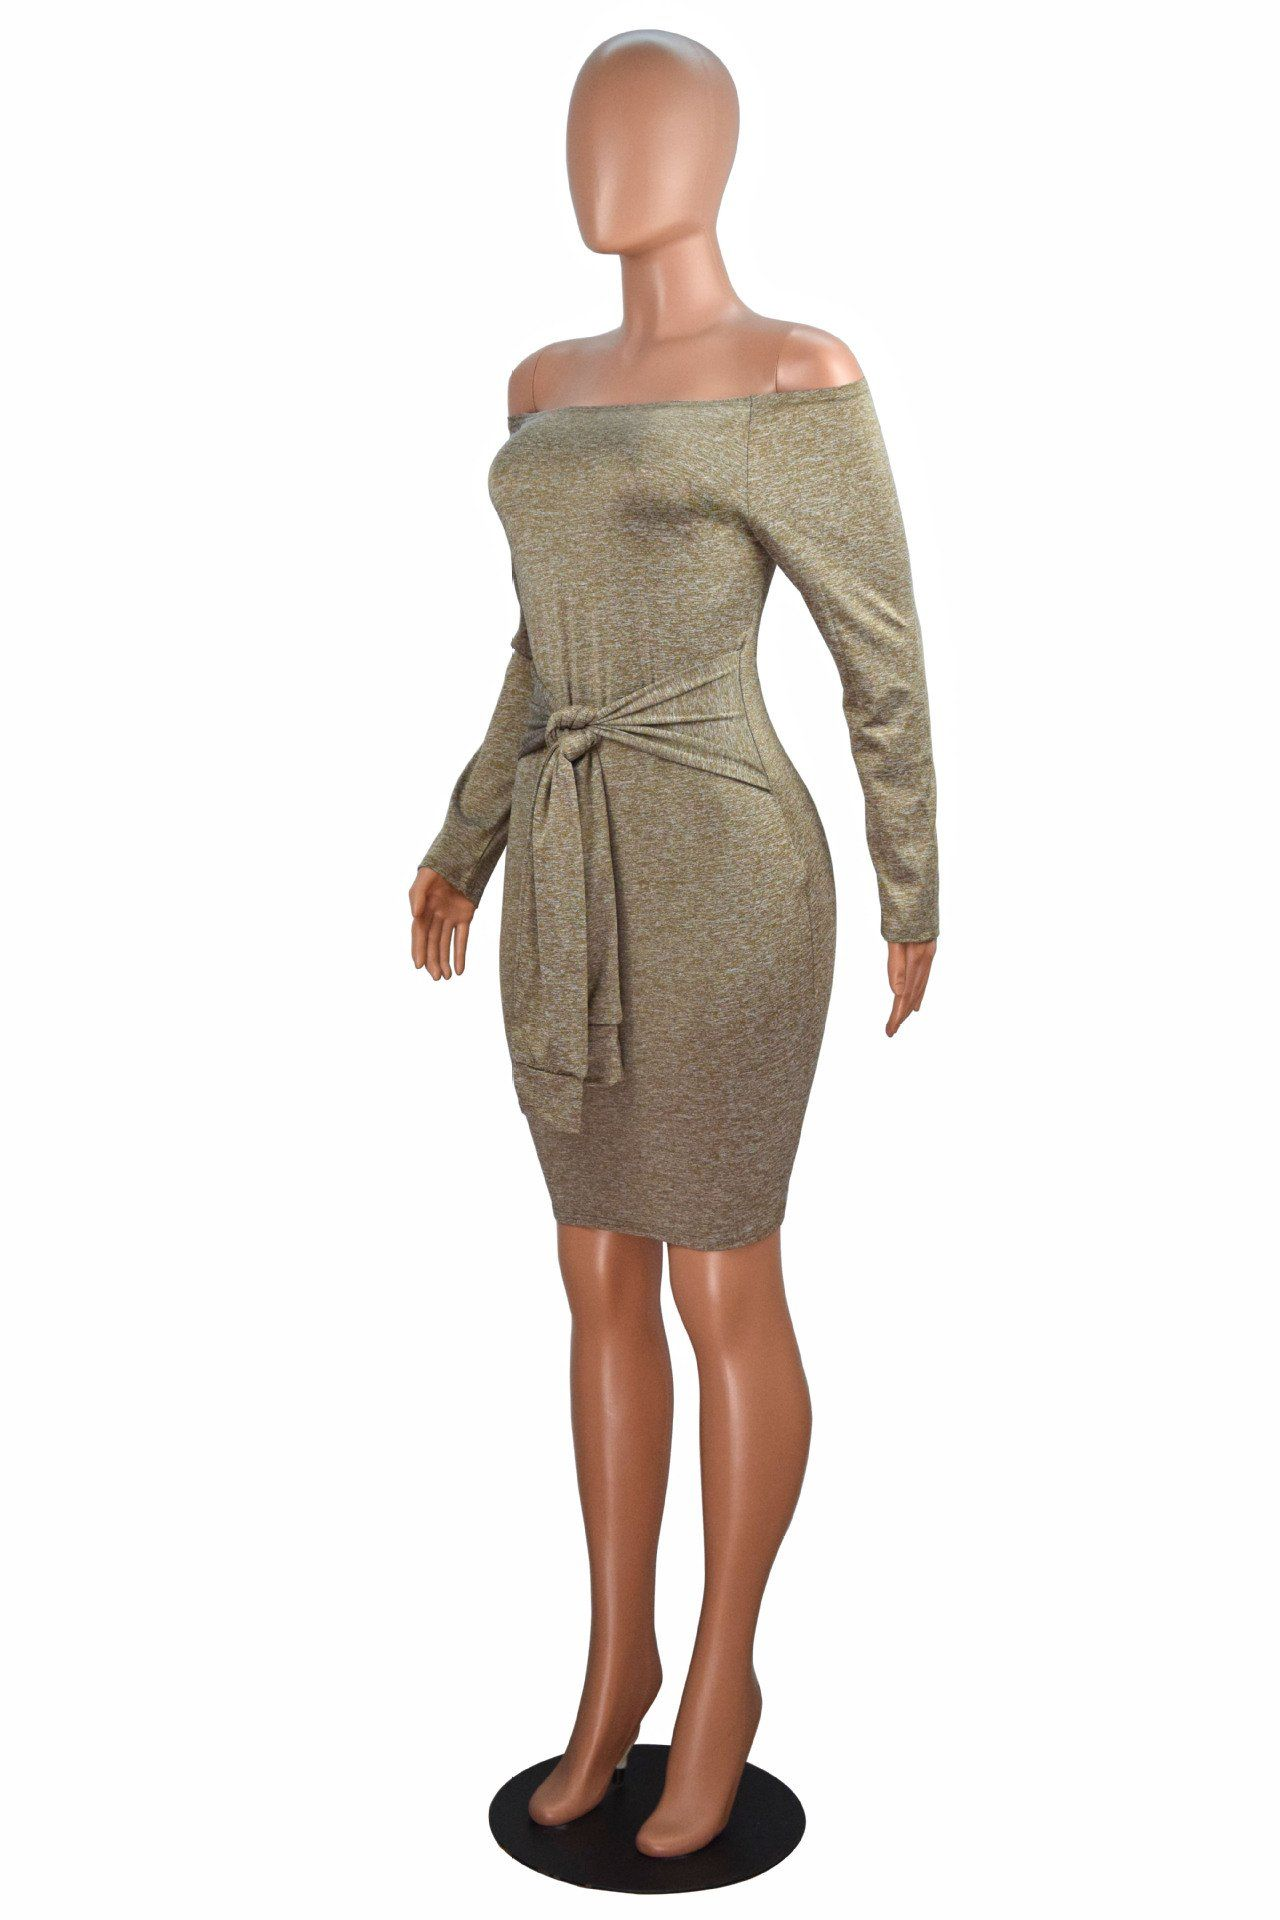 Bodycon bandage evening cocktail party dress women off the shoulder